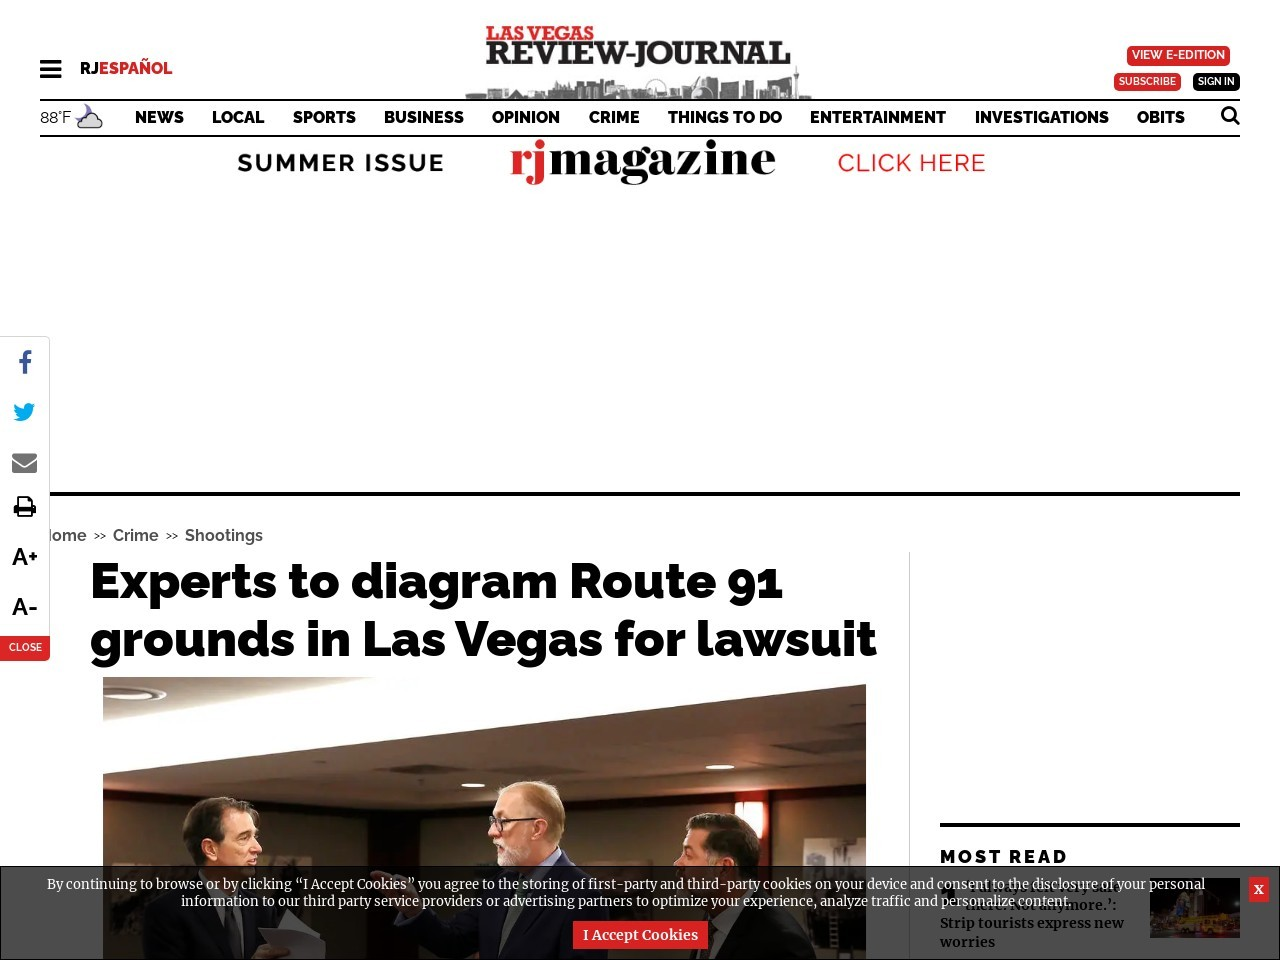 Experts to diagram Route 91 grounds in Las Vegas for lawsuit